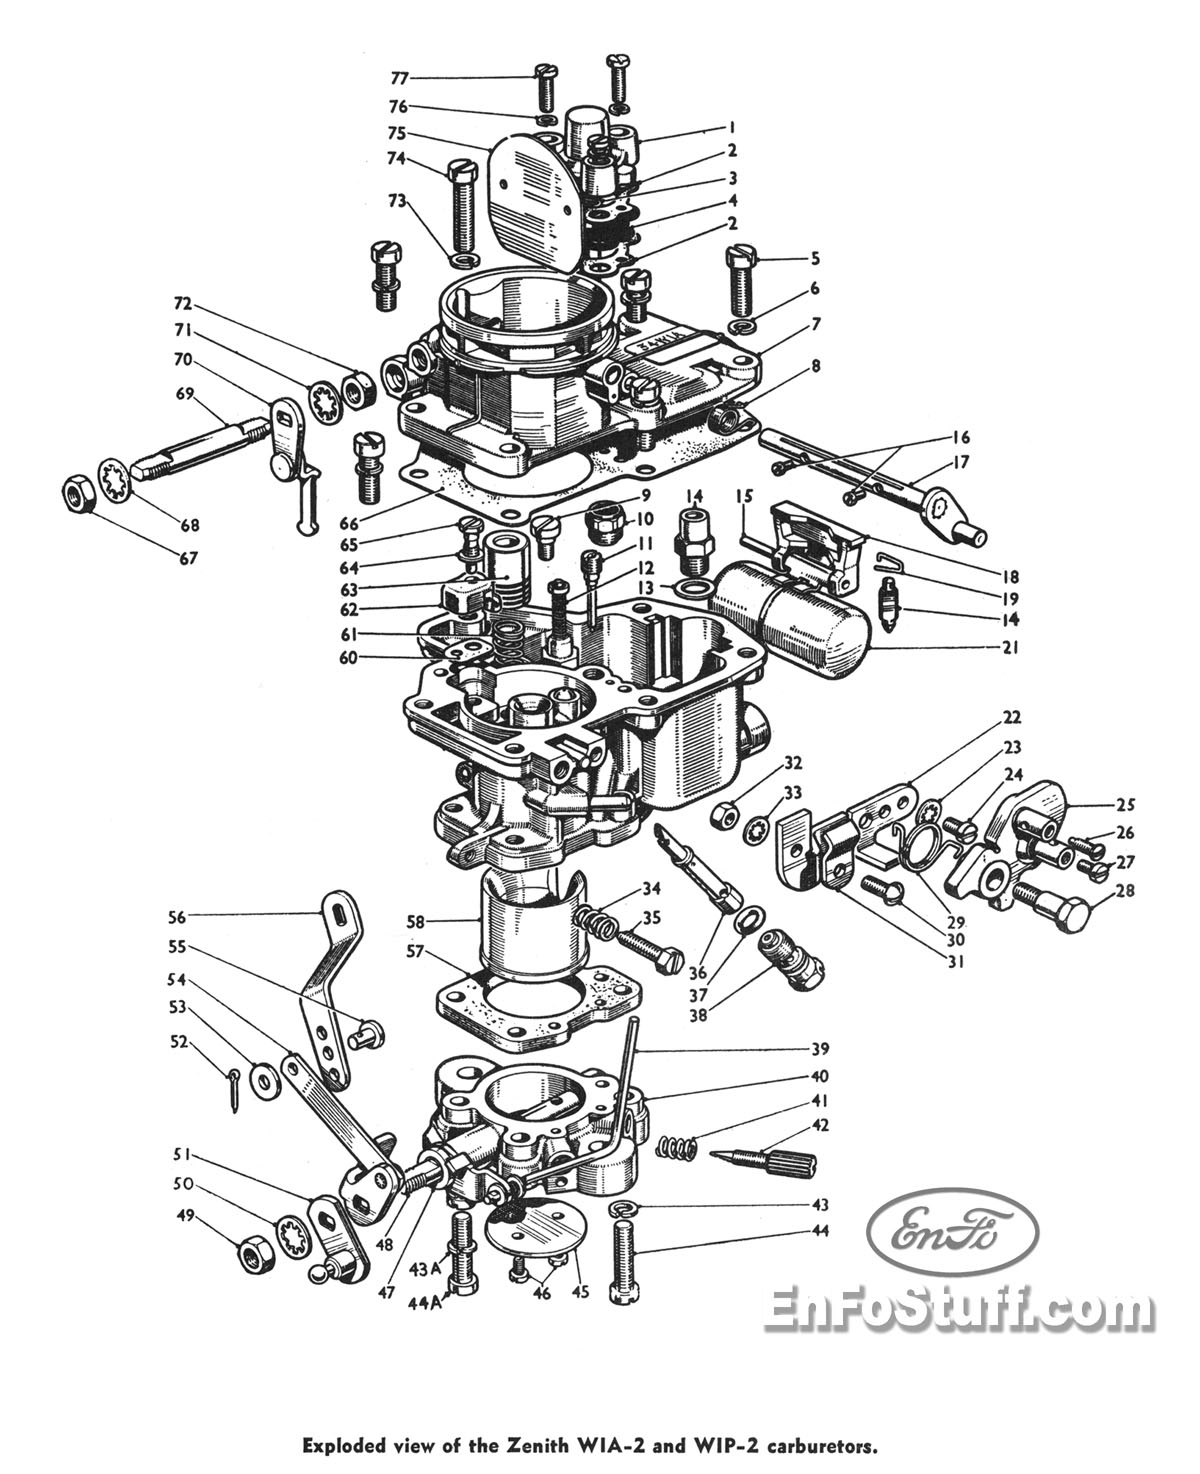 Zenith Carburetors Diagrams Just Another Wiring Diagram Blog Carburetor Wia 2 And Wip Consul Mkii Zodiac Rh Enfostuff Com Model Numbers Identification